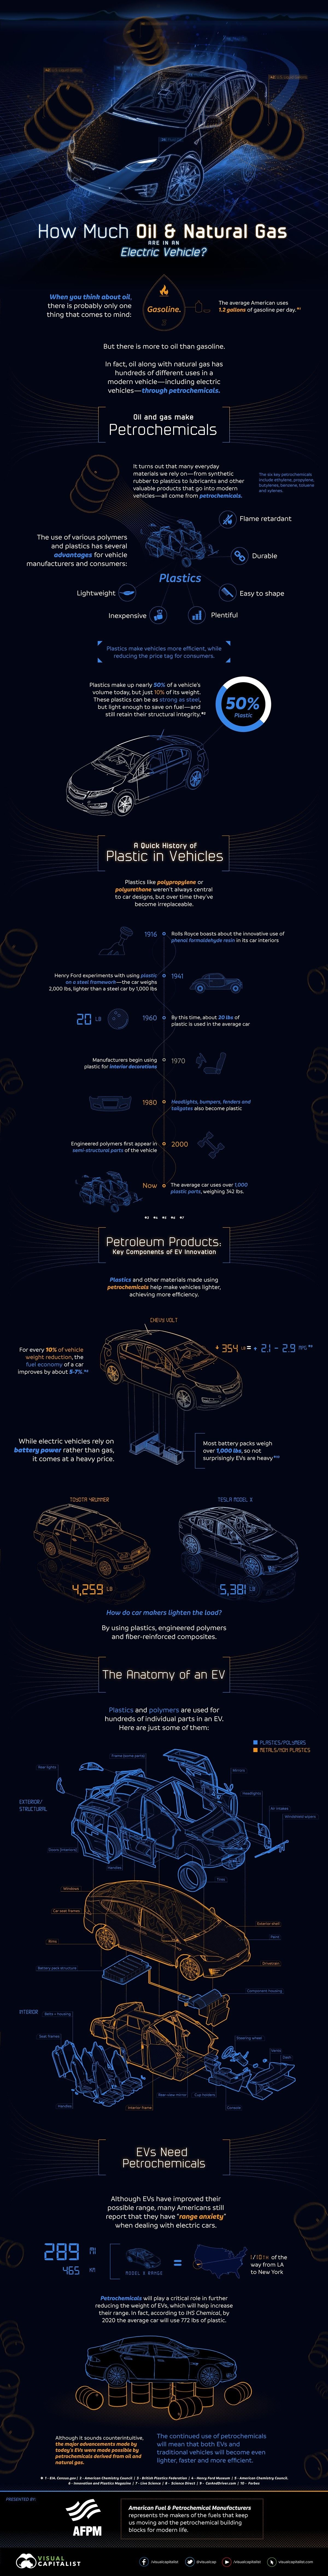 How Much Oil is in an Electric Vehicle? #infographic